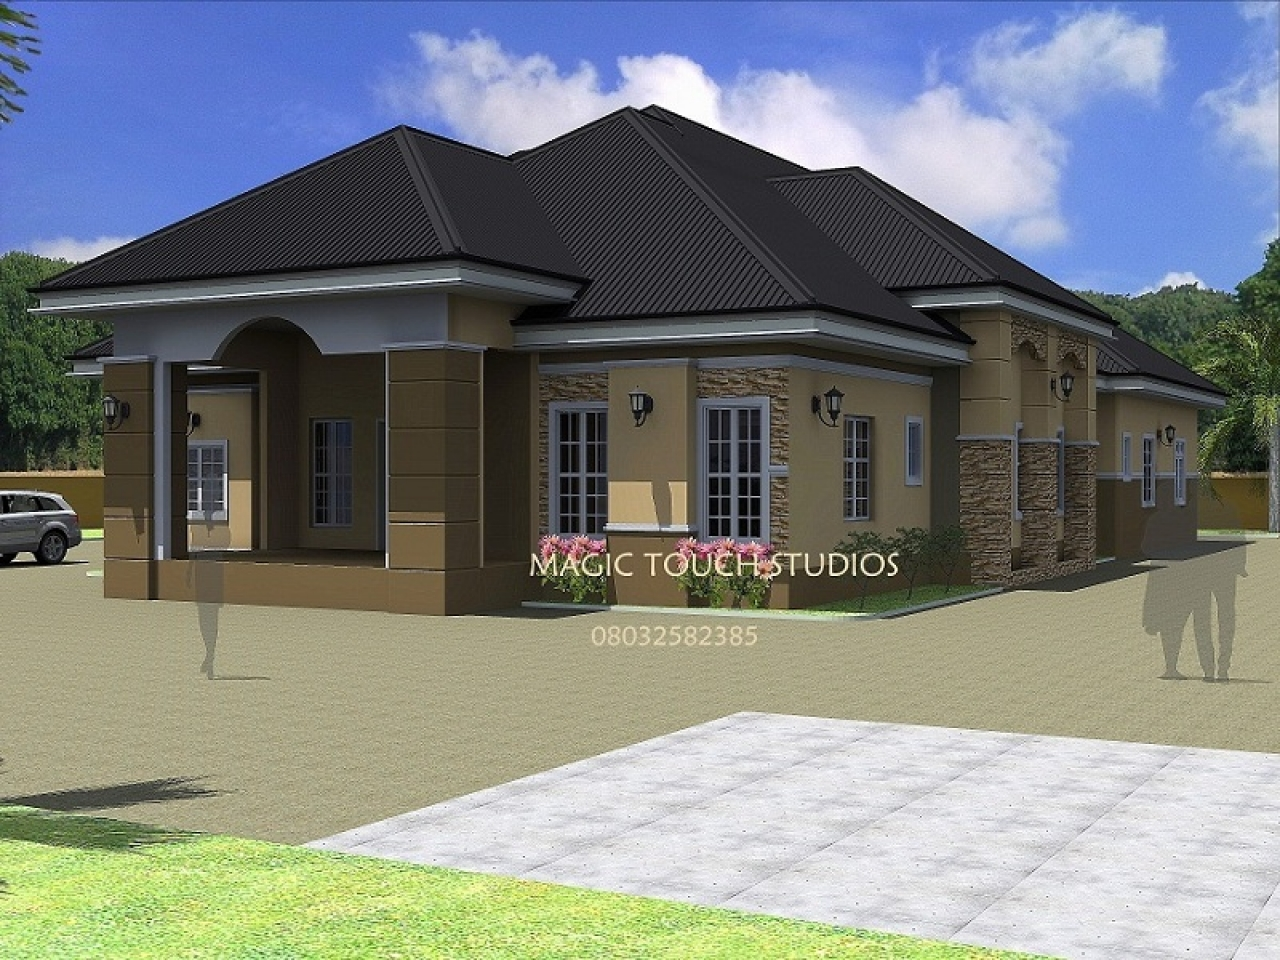 4 Bedroom Ranch House 4 Bedroom Bungalow House Bungalows